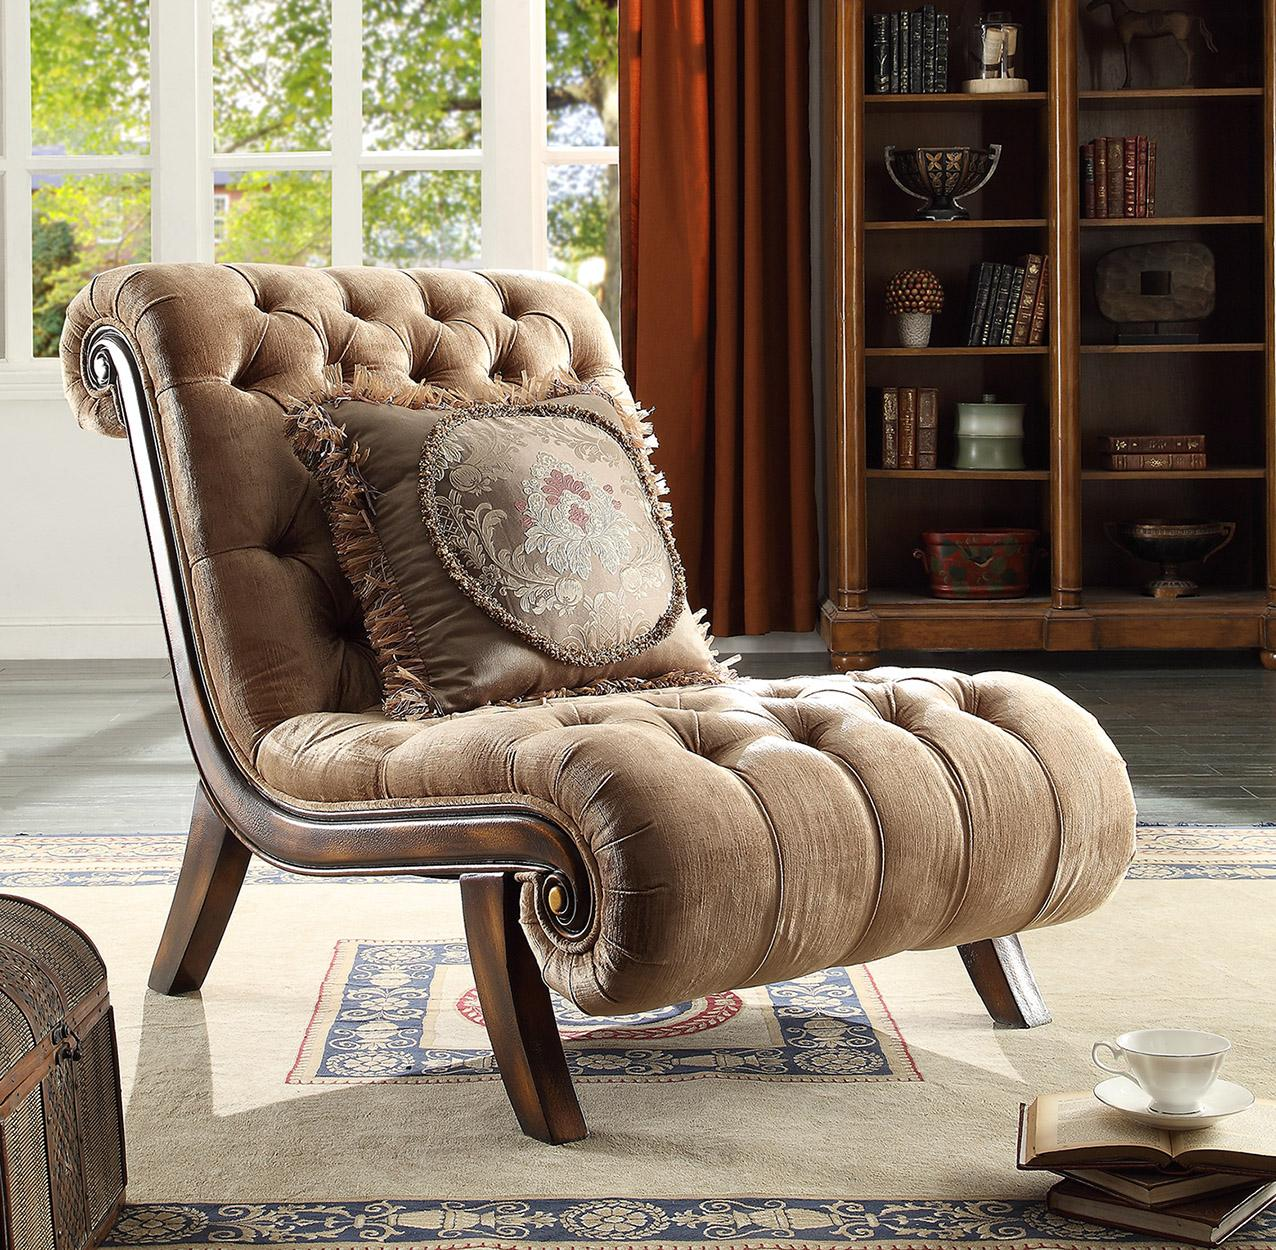 Traditional Luxury Caramel HD-1631 Chair in Caramel by Homey Design